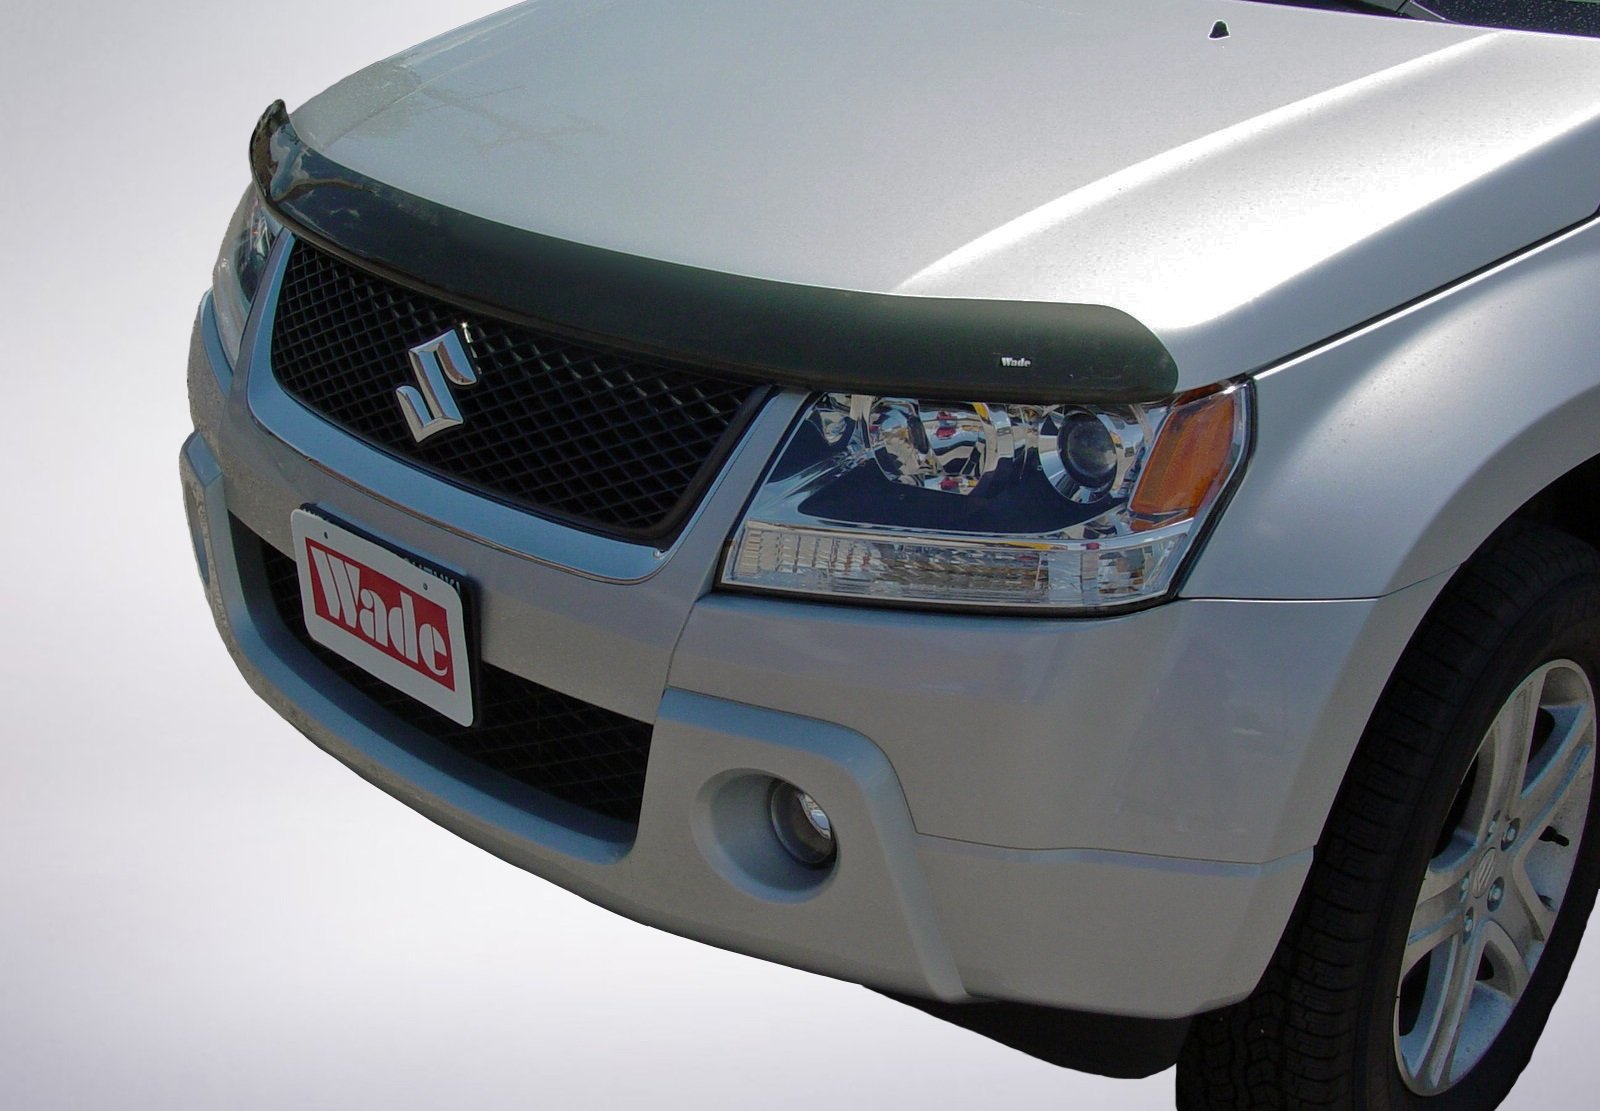 2009 Suzuki Grand Vitara Bug Shield